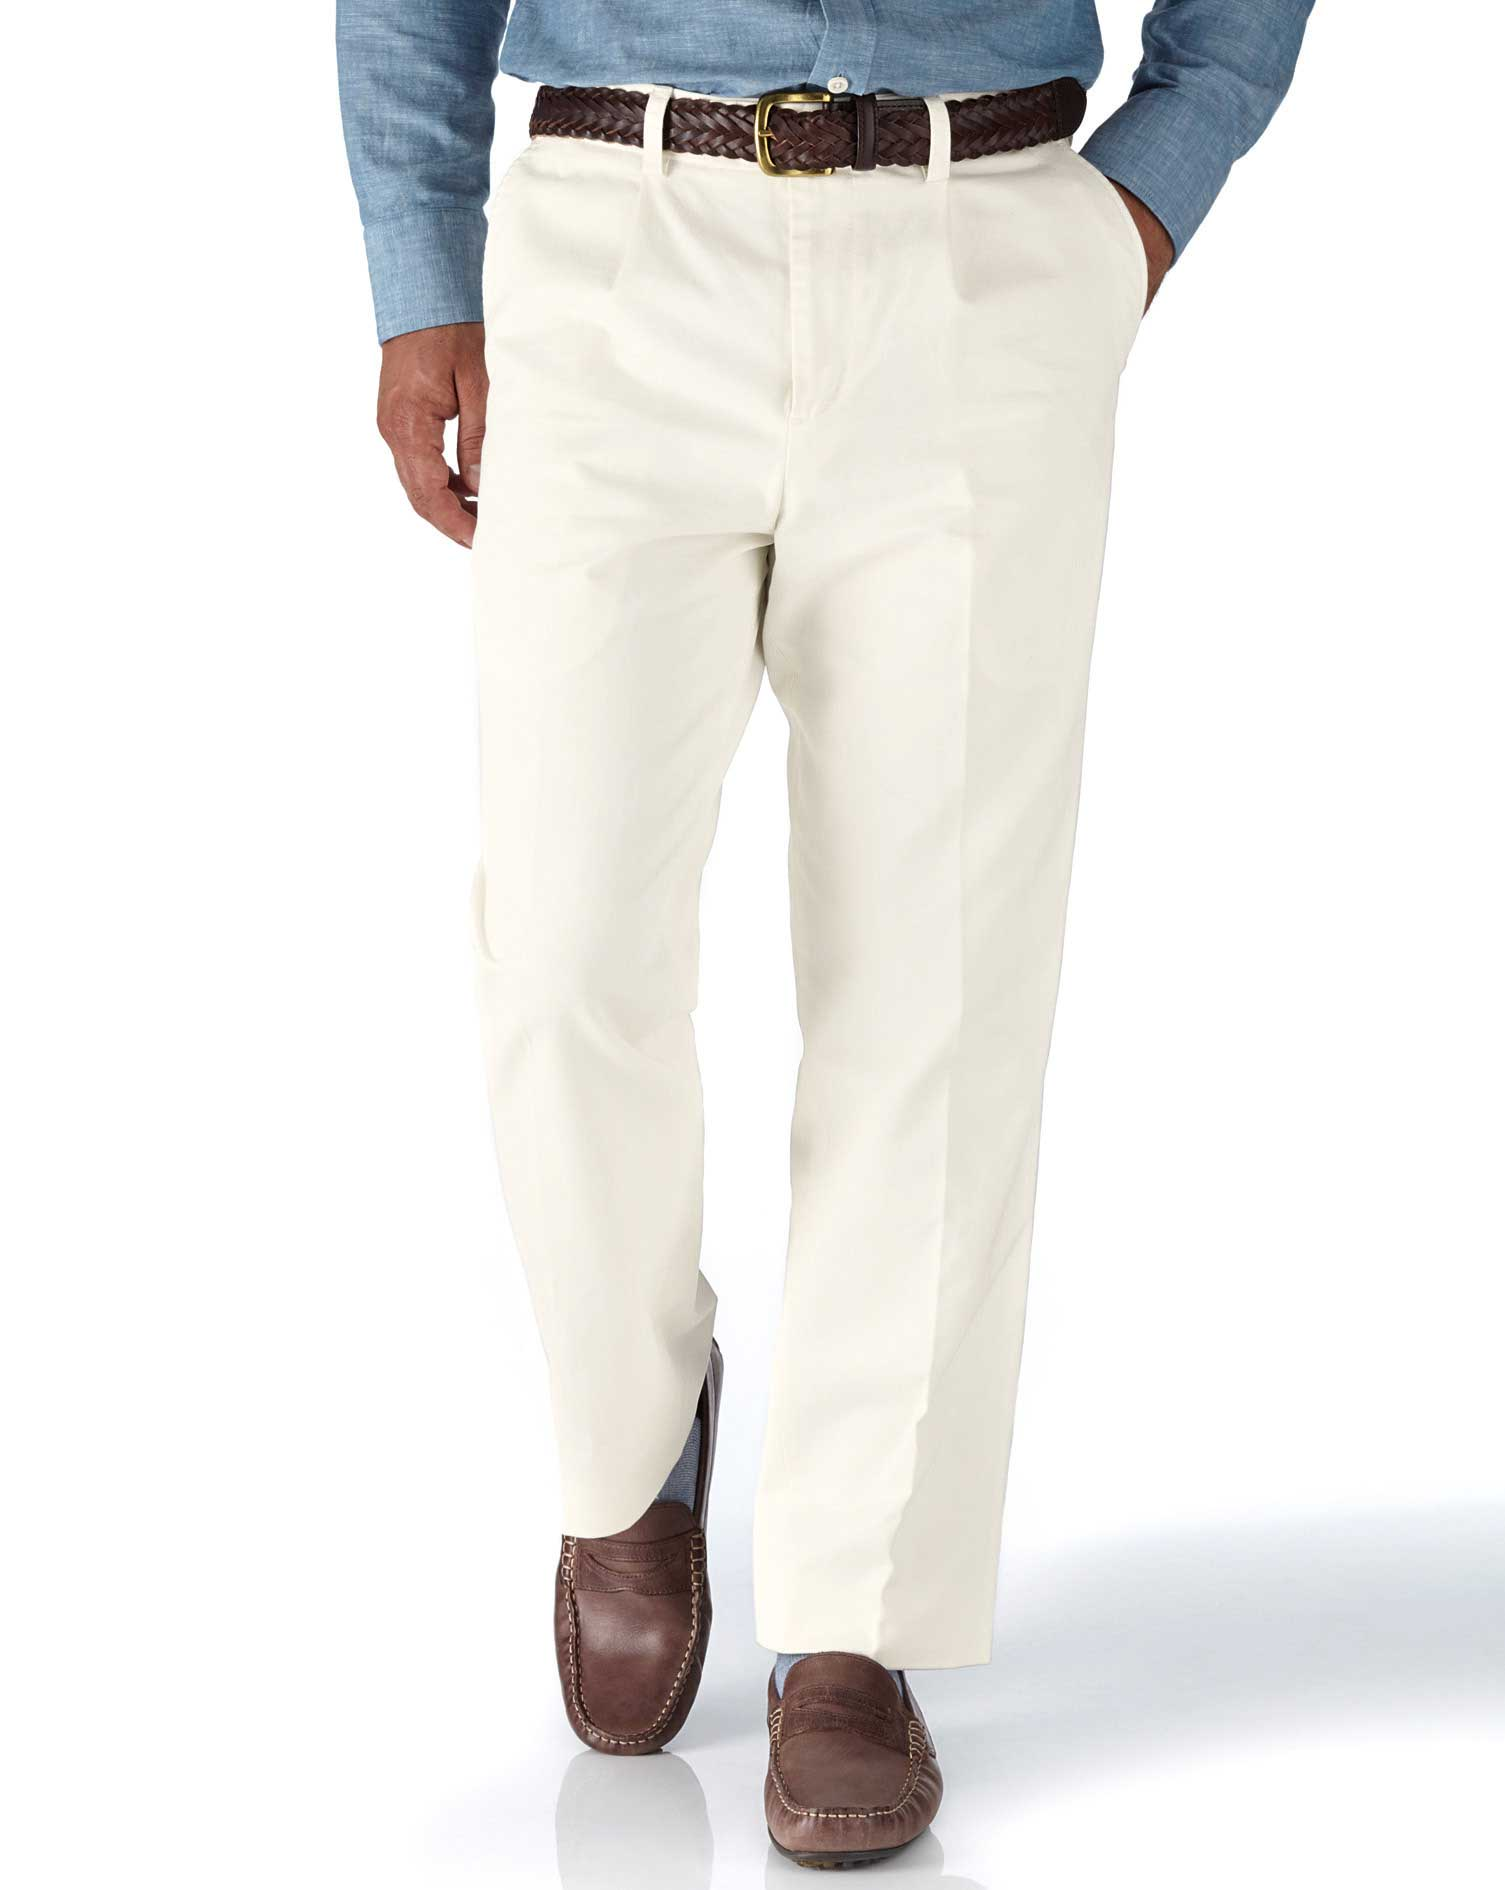 White Classic Fit Single Pleat Weekend Cotton Chino Trousers Size W42 L30 by Charles Tyrwhitt